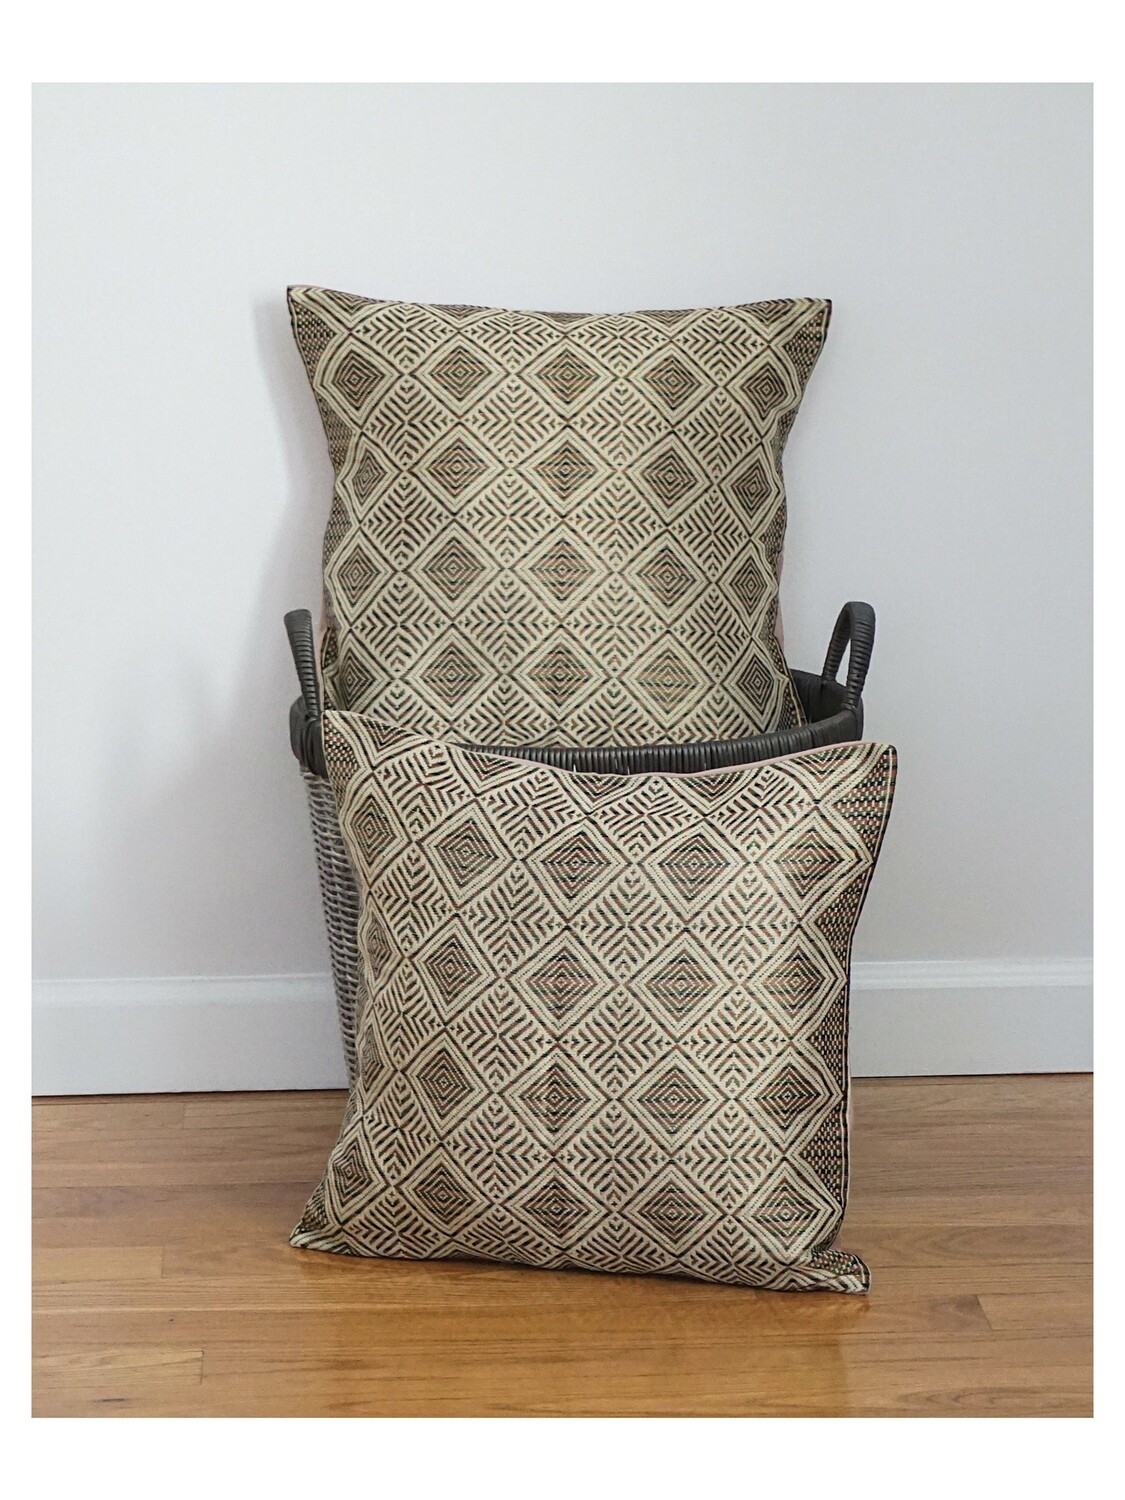 (1) Throw Pillow Accent For Sofa Bed Brown Beige Cotton, Rayon, Linen Ethiopian